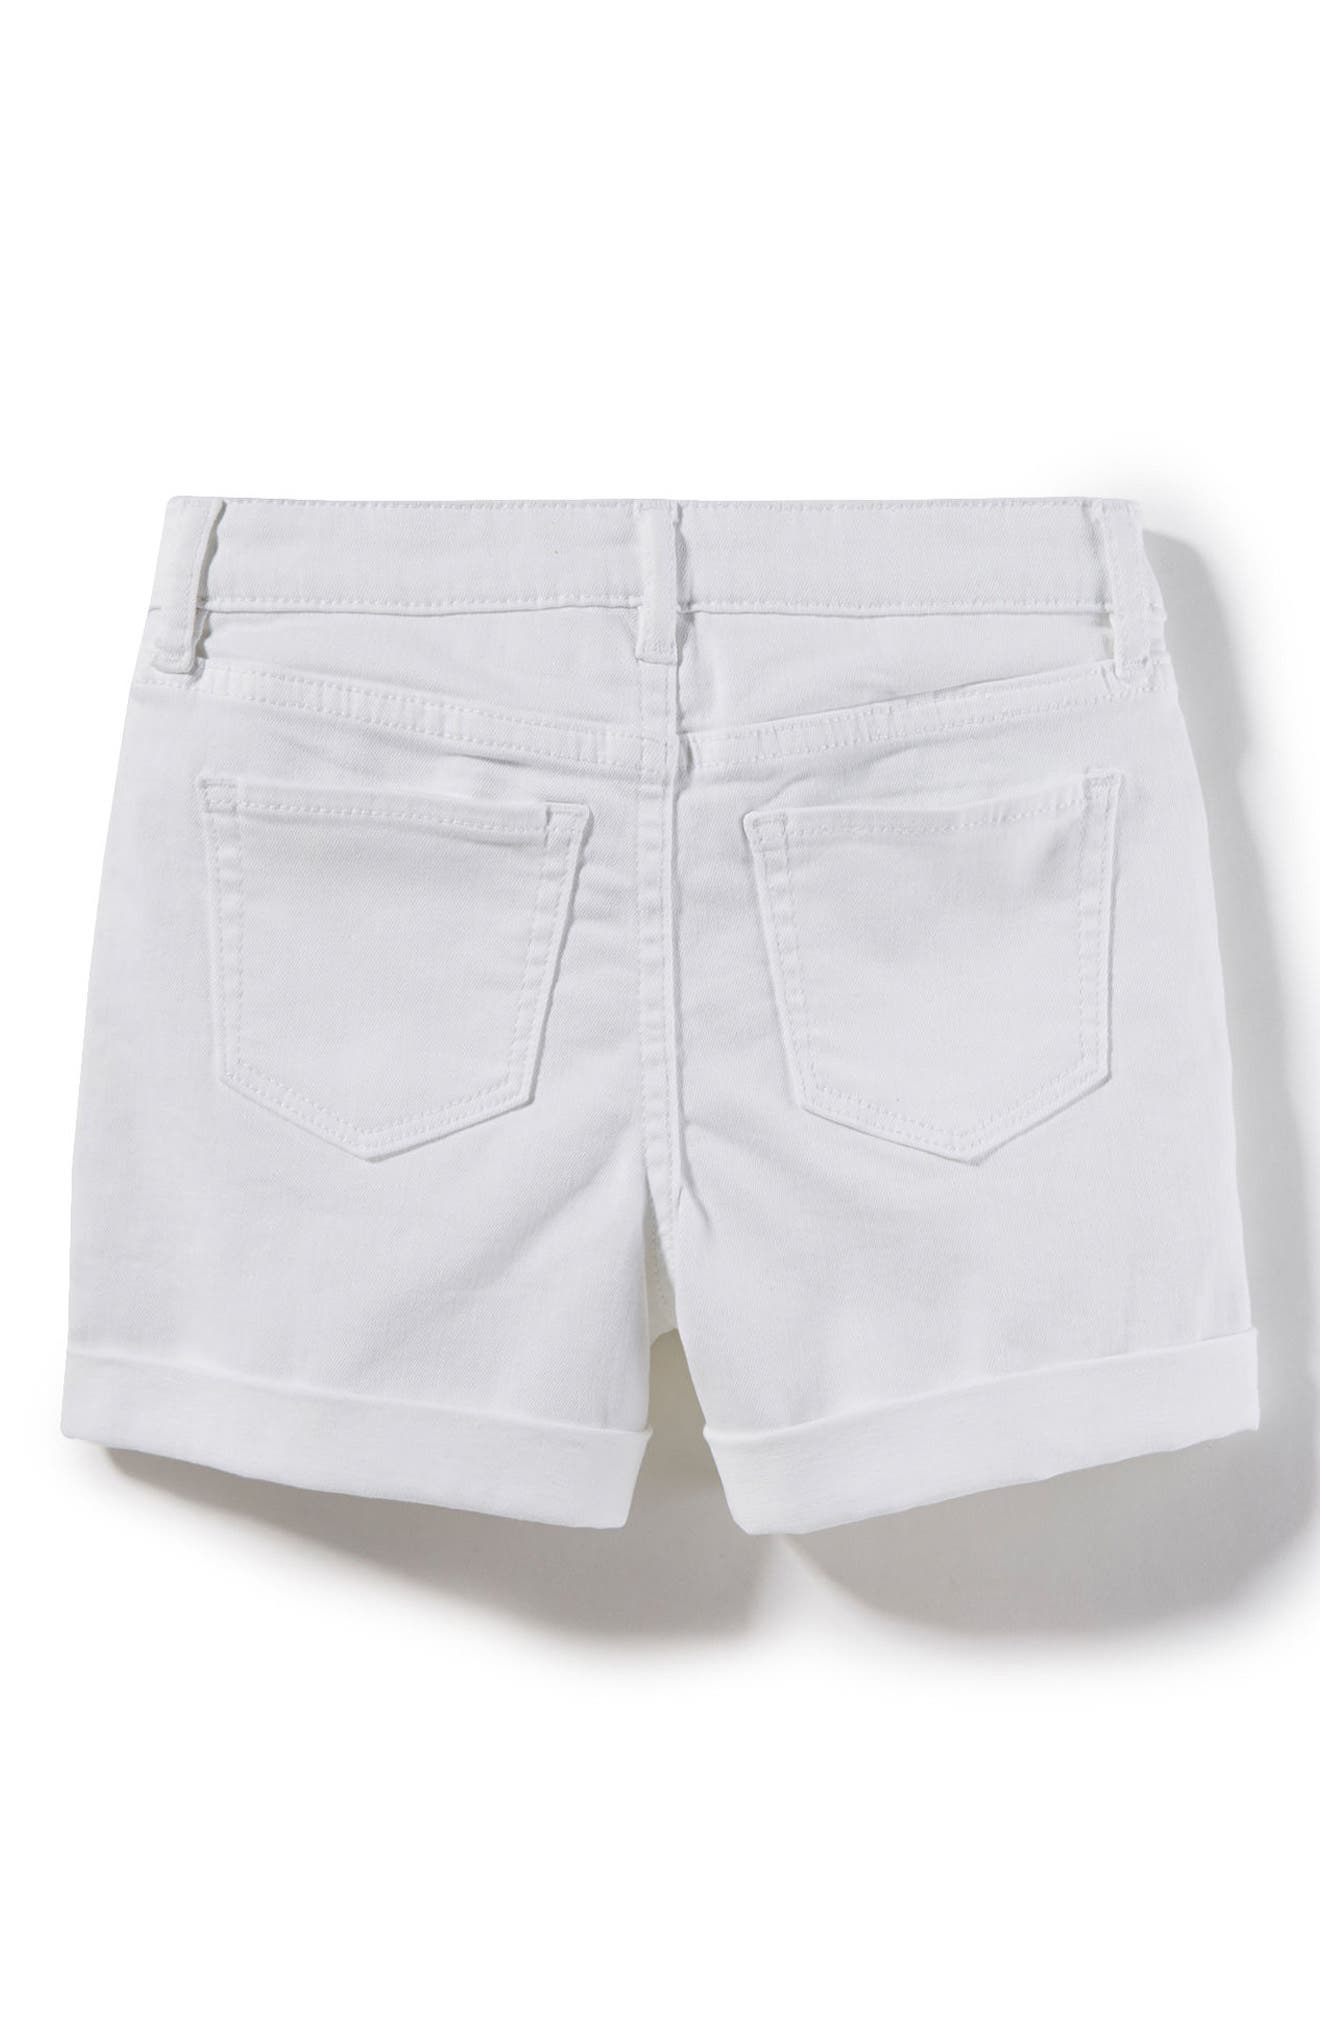 Griffin Roll Cuff Shorts,                             Alternate thumbnail 2, color,